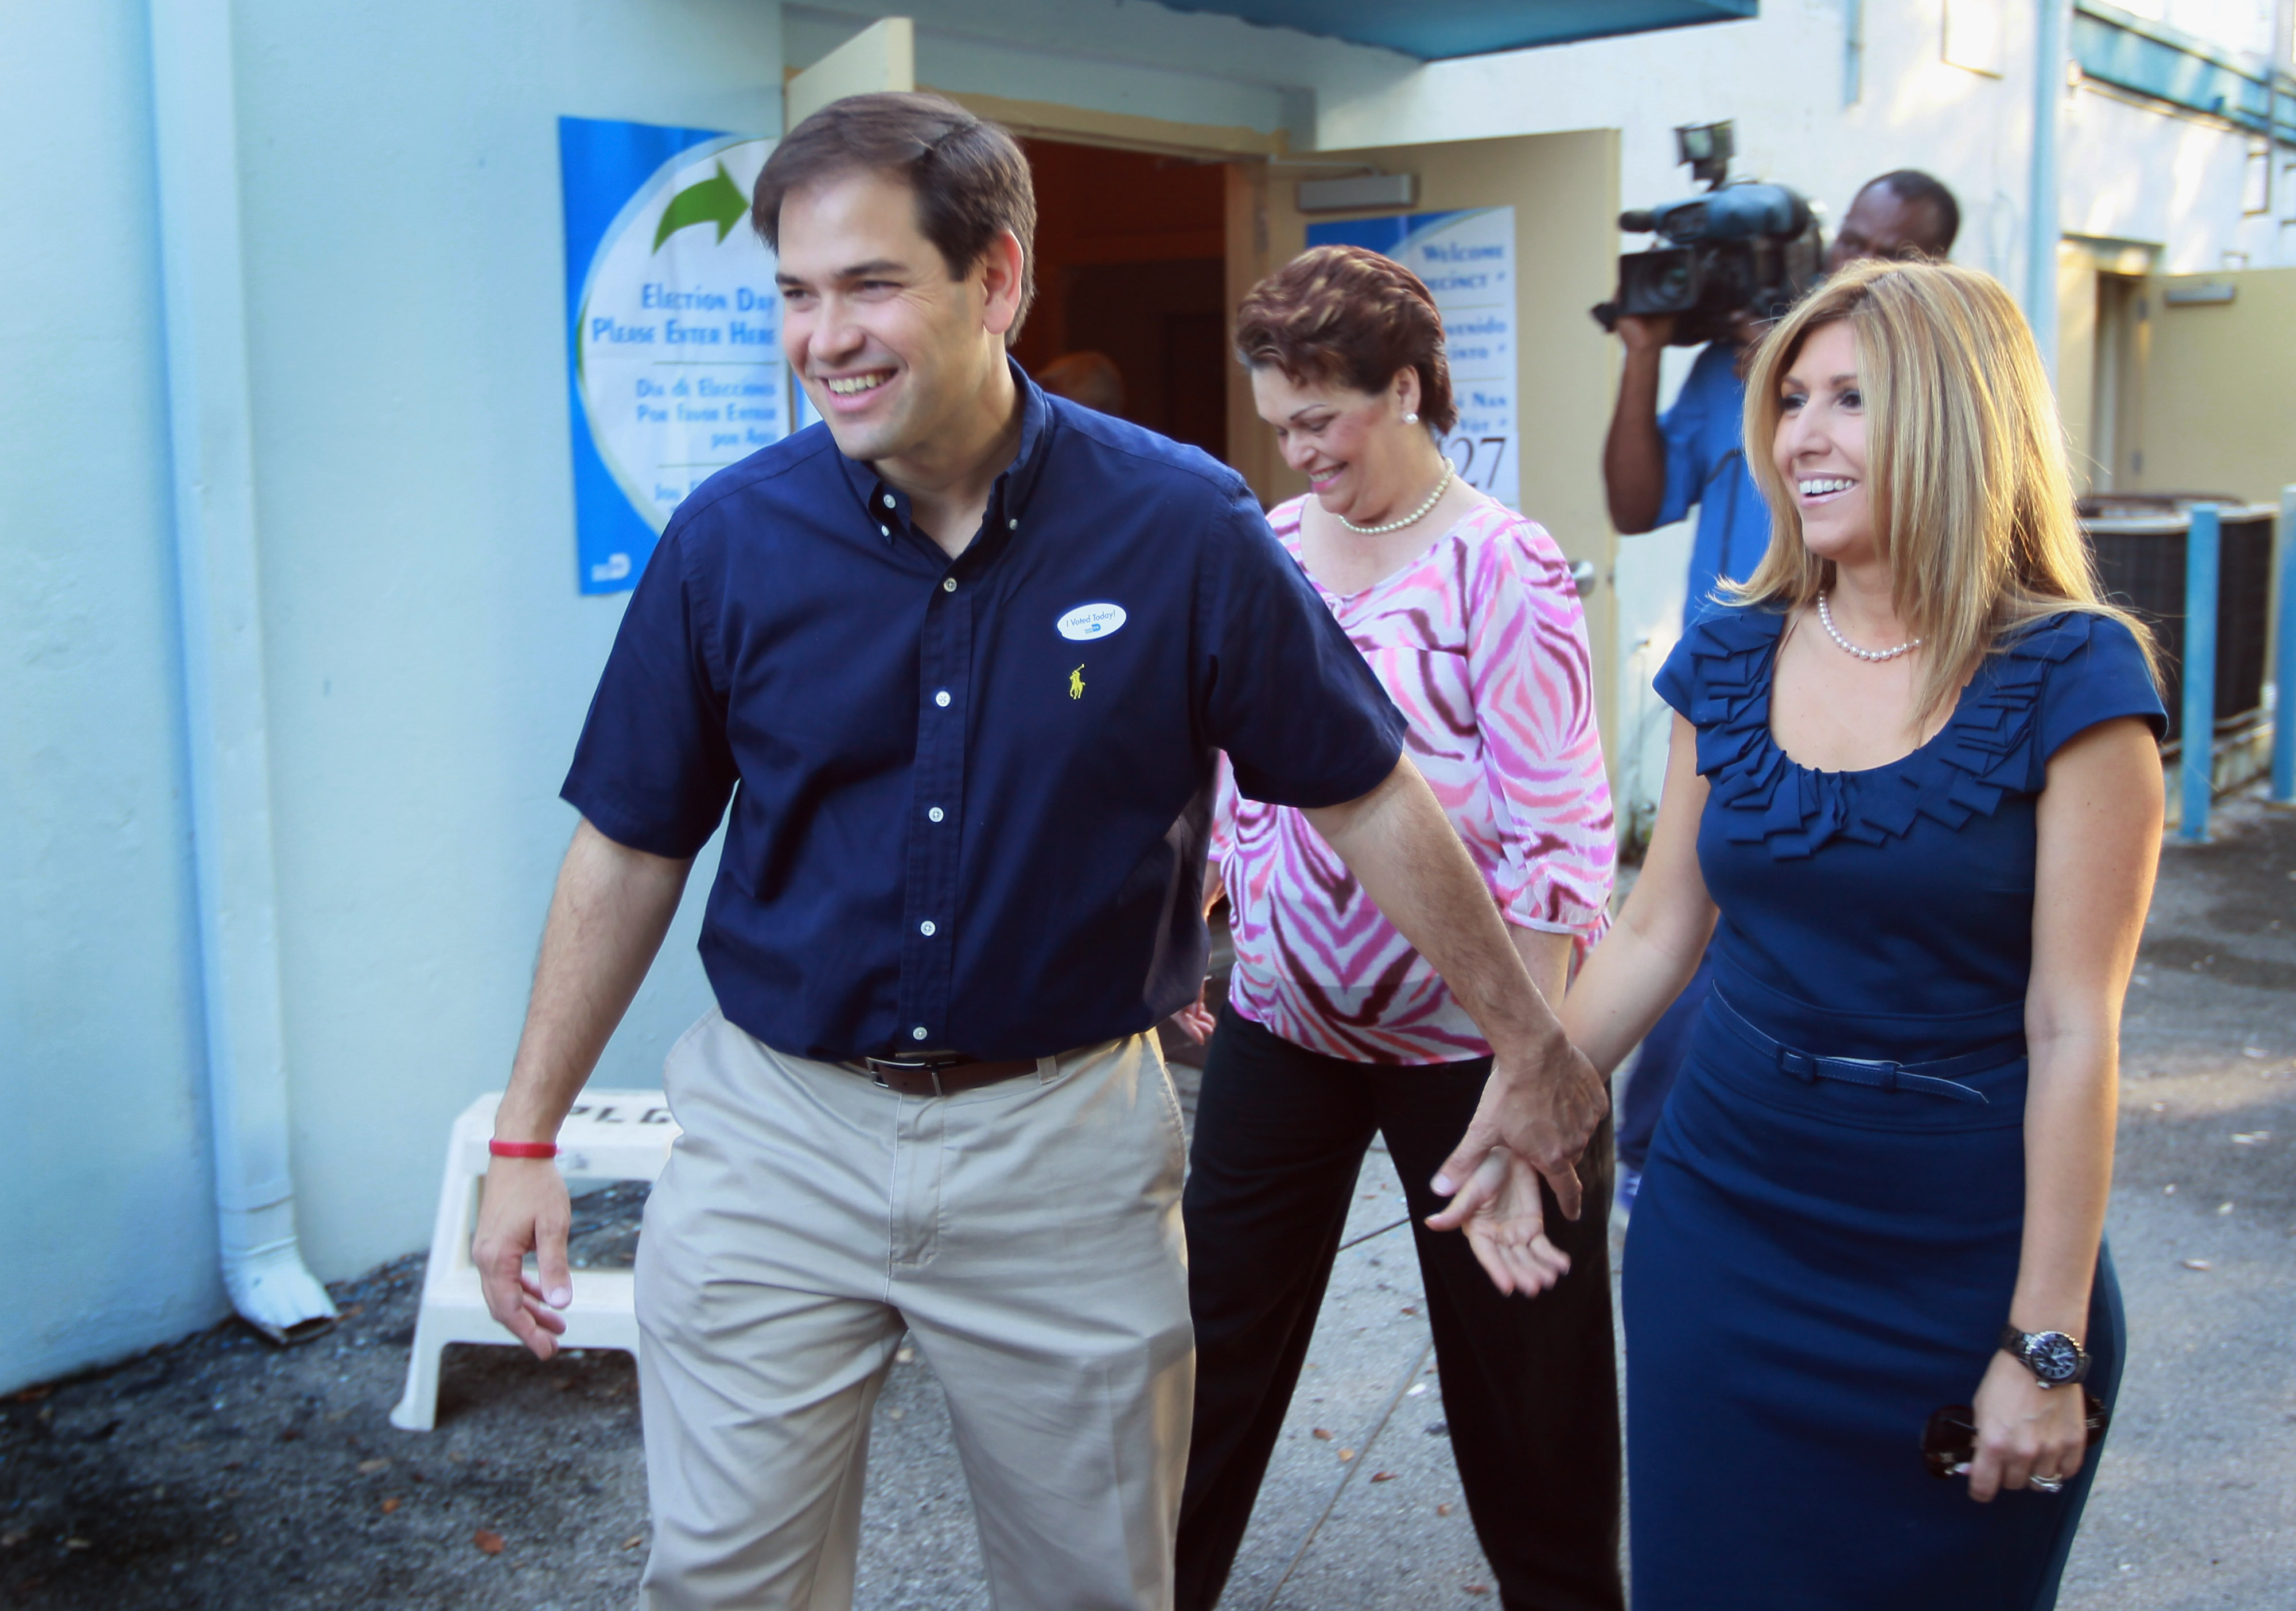 Jeannette and Marco Rubio in 2010. (Getty)